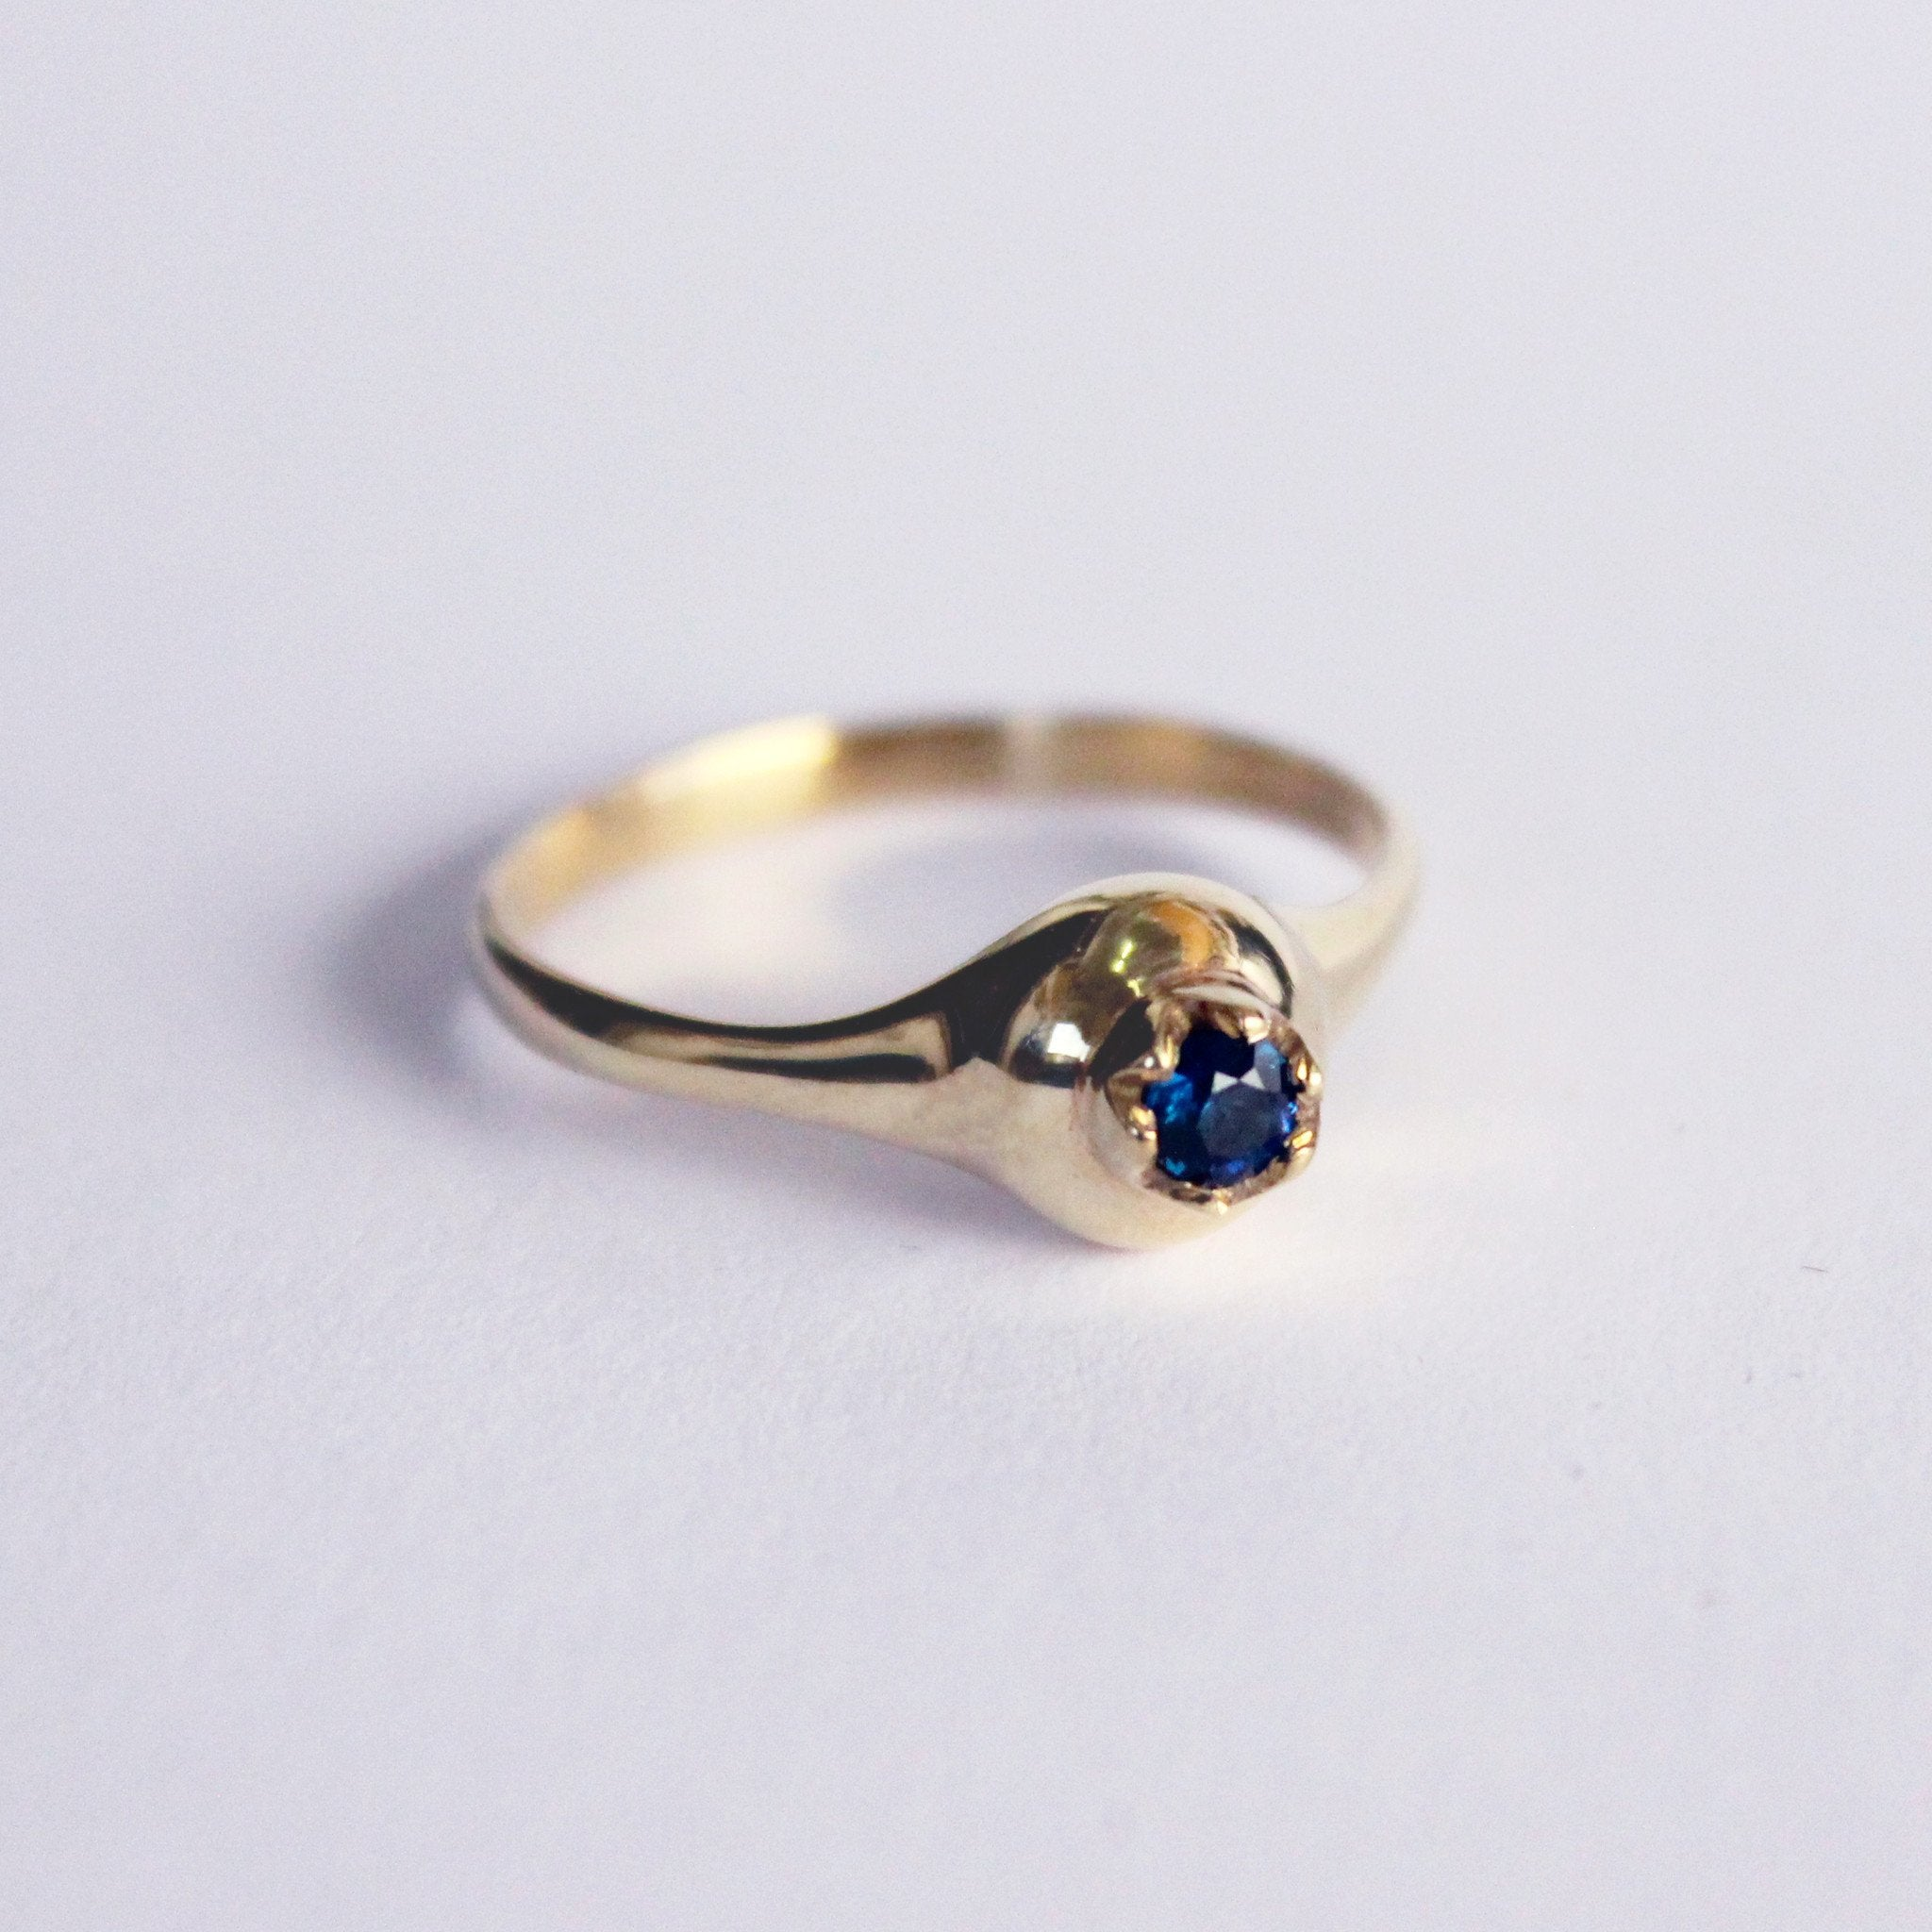 nr product blue ring sapphire gold nature adr shiny delicate home